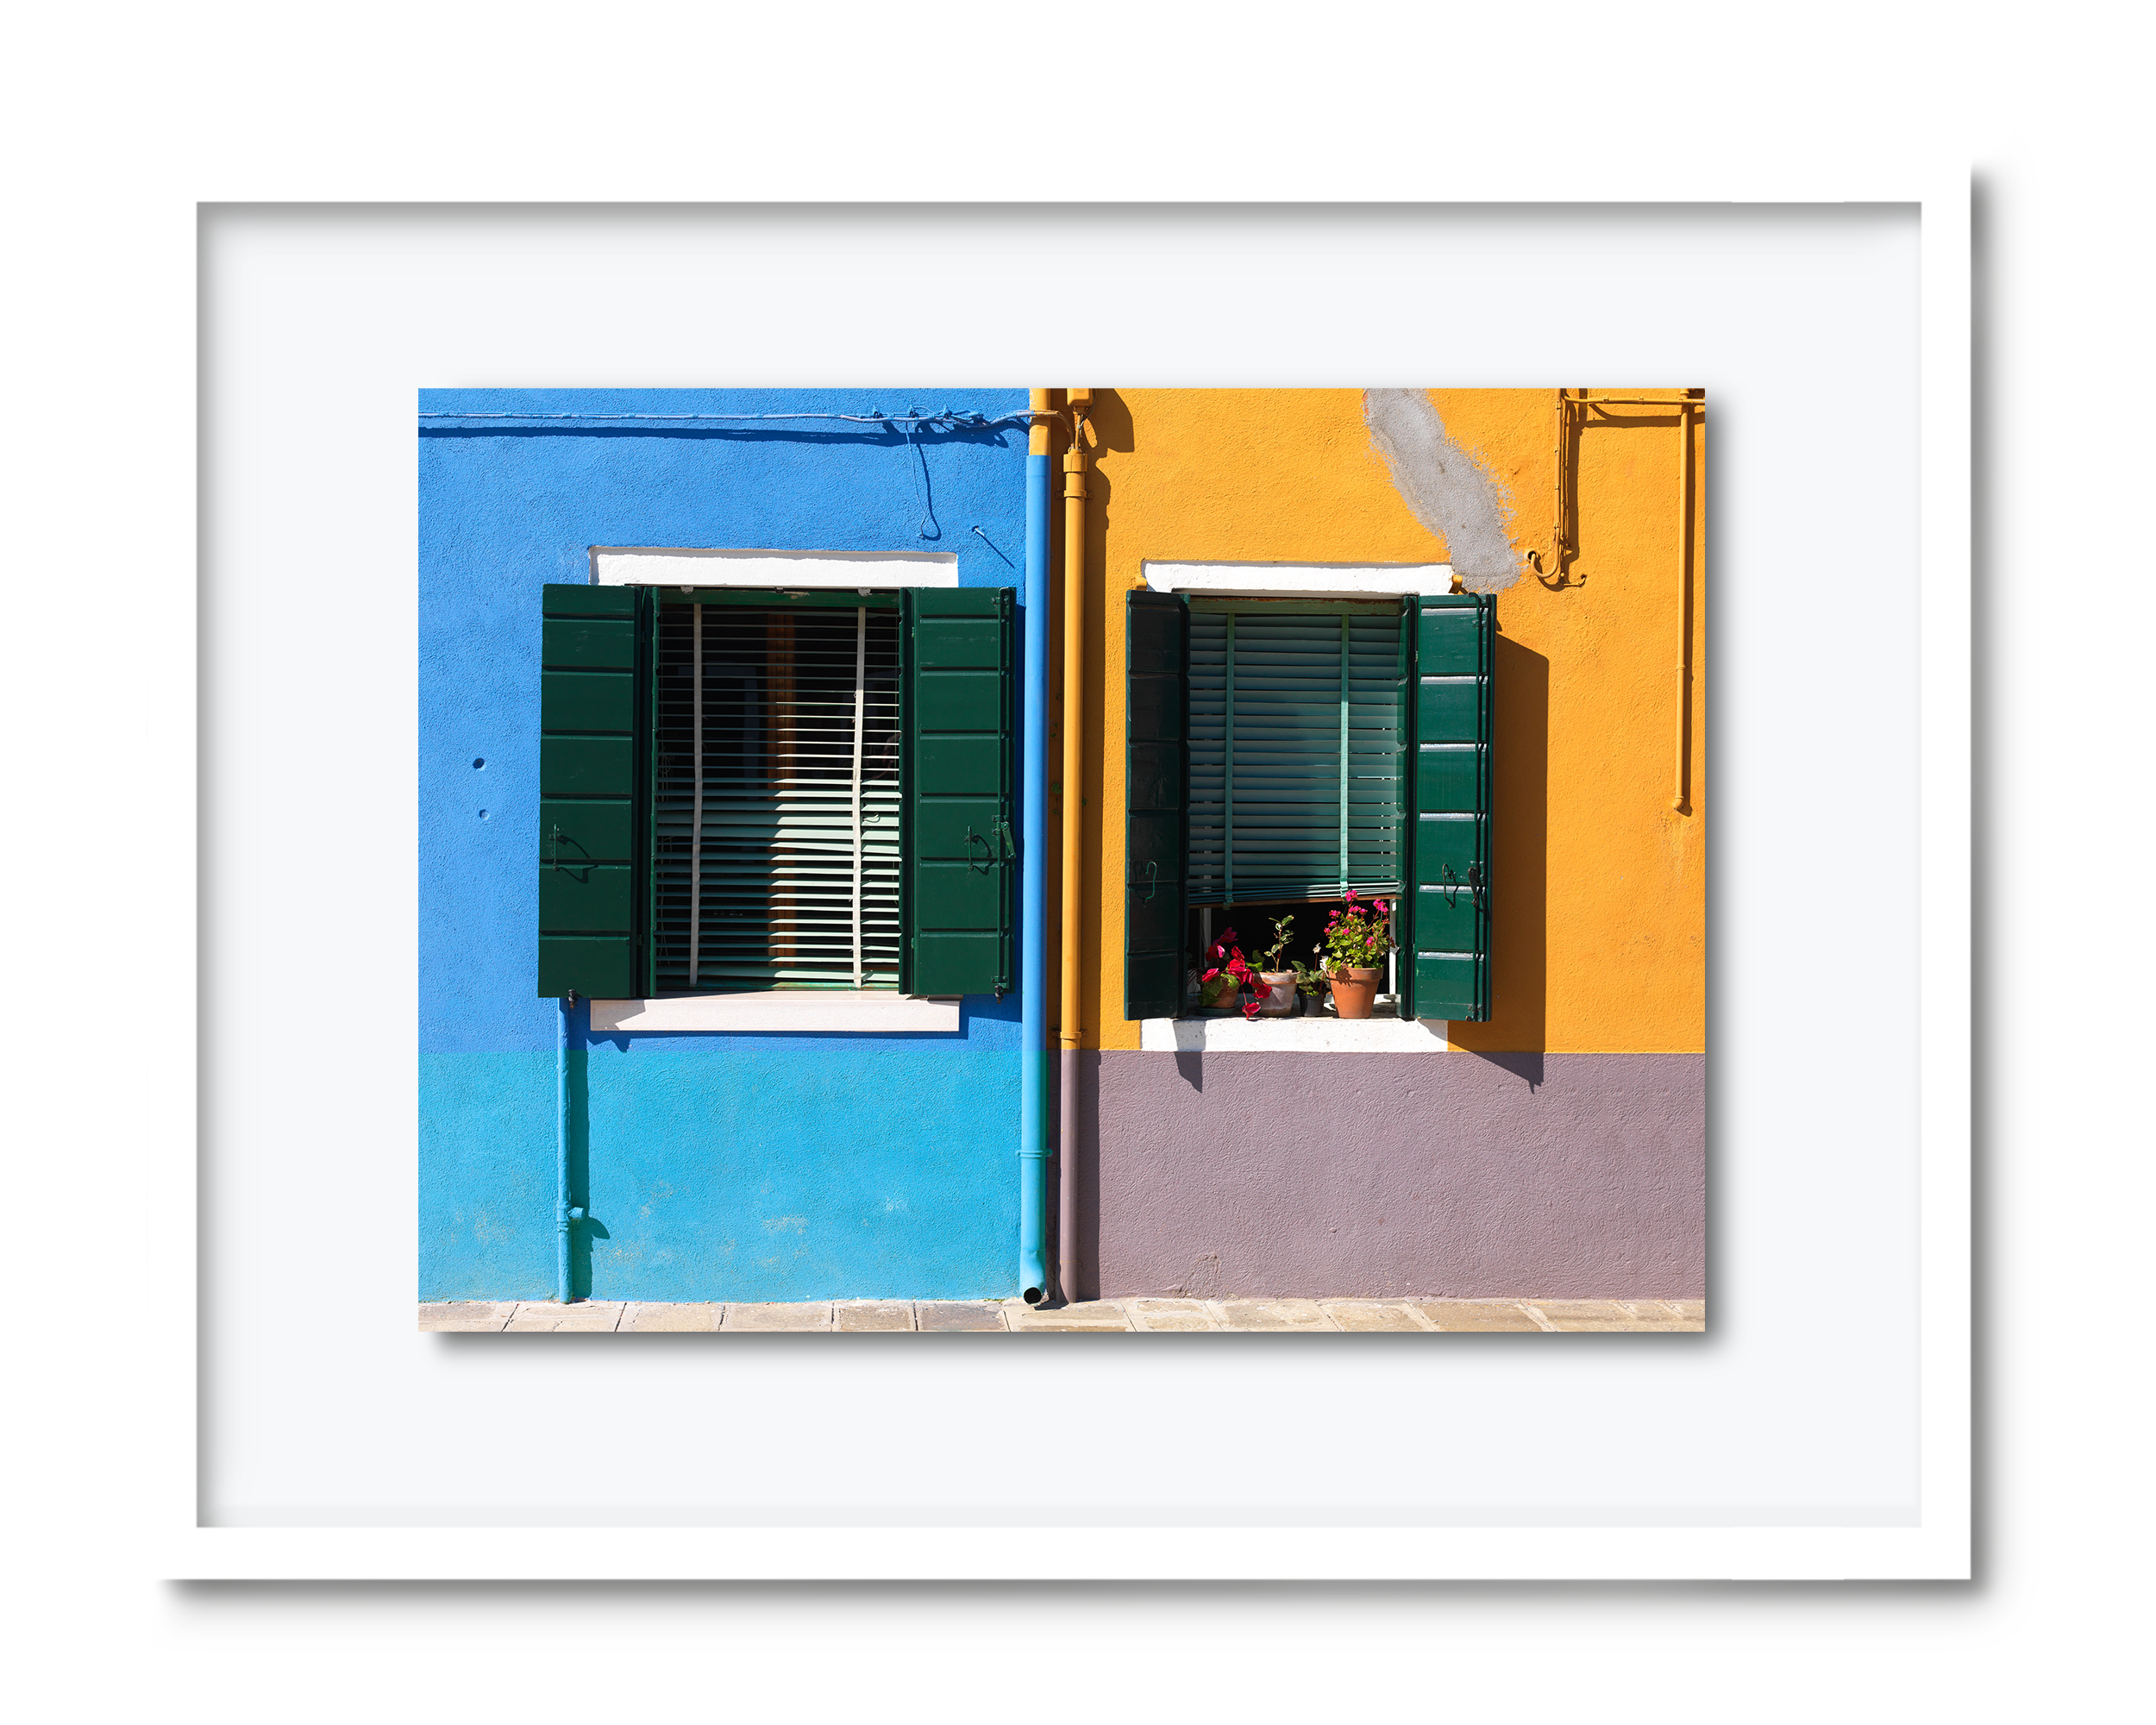 15.david-pearce-colored-building-venice.png